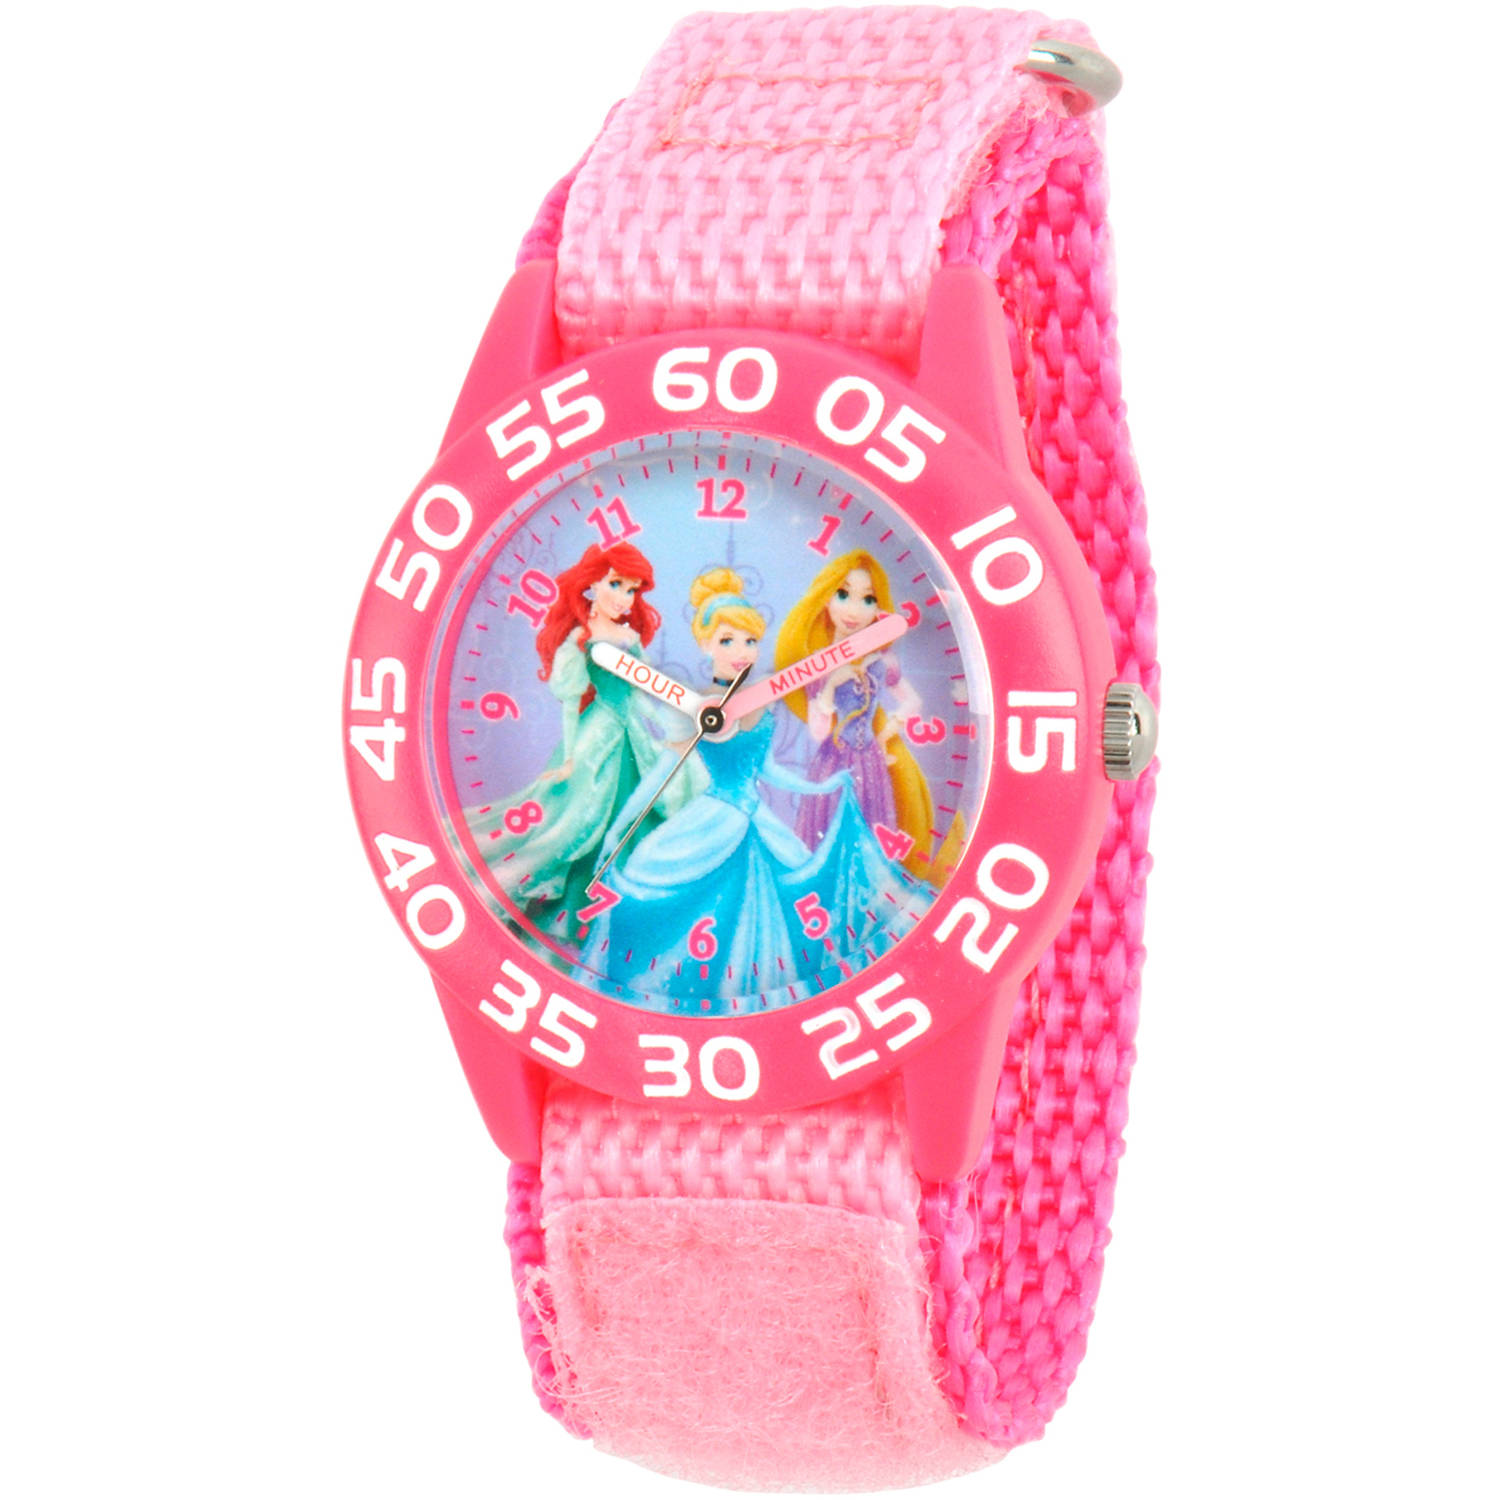 Disney Princess Ariel, Cinderella and Rapunzel Girls' Pink Plastic Time Teacher Watch, Pink Nylon Strap